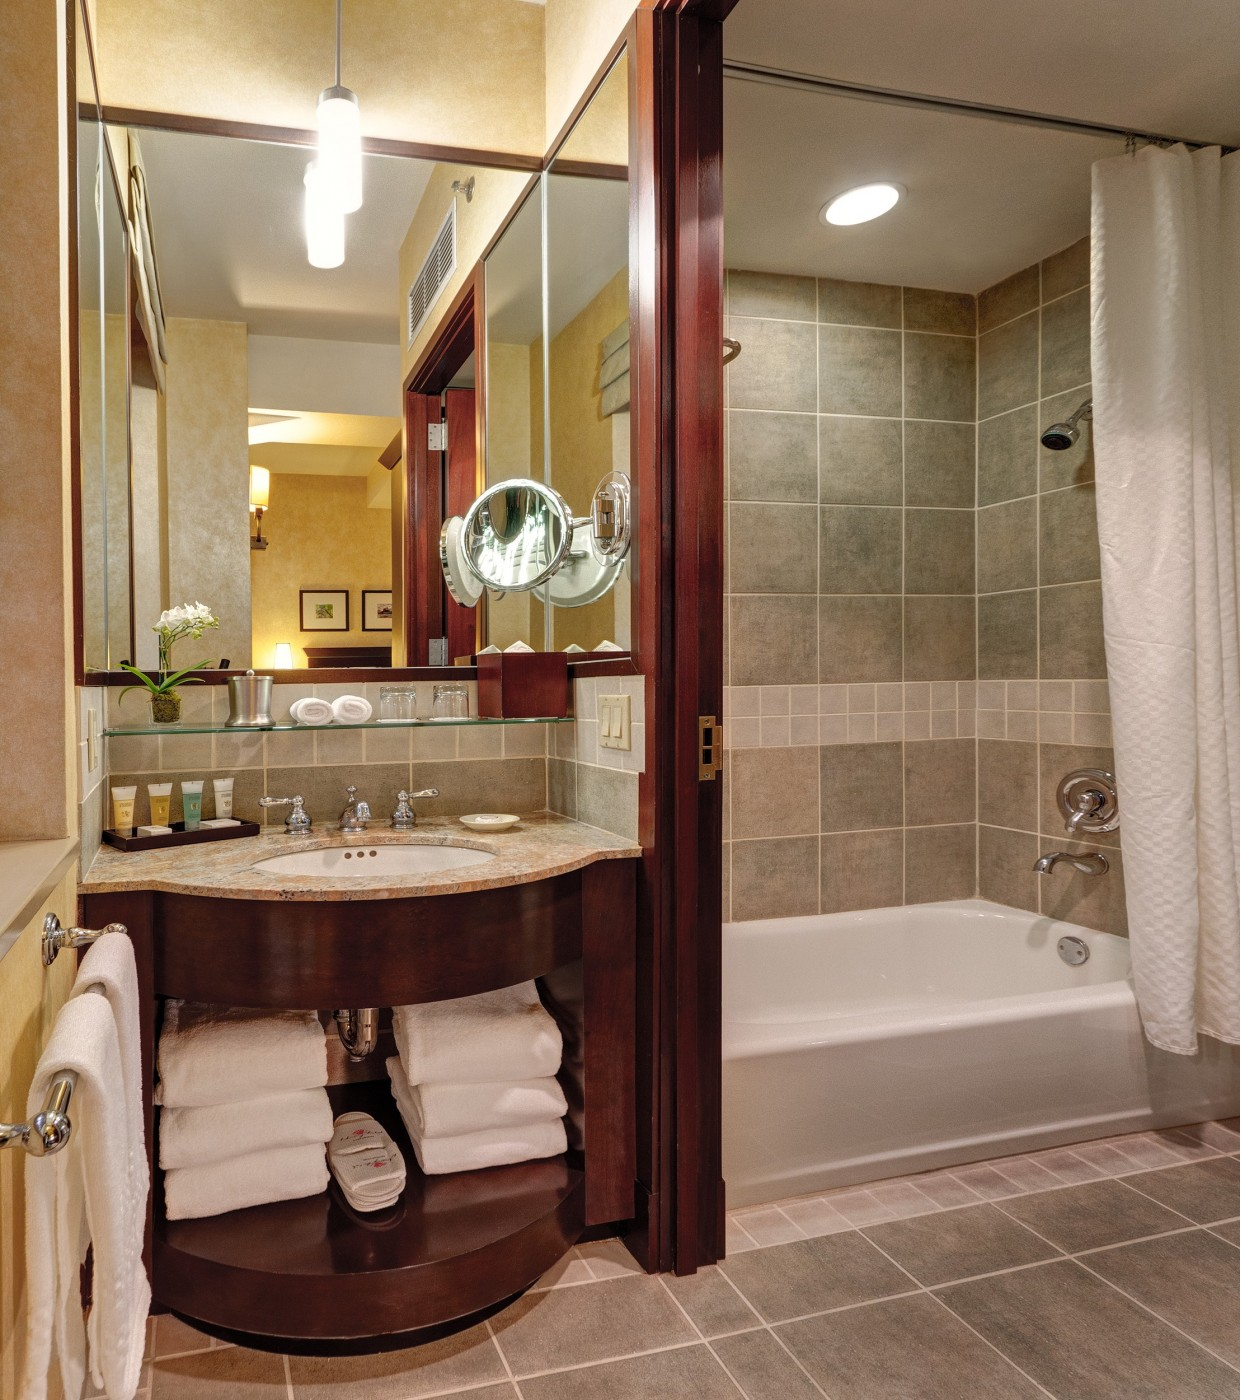 Our Petite Rooms Have A Separate Sink And Bathroom Area And Gilchrest U0026  Soames Bath Amenities.